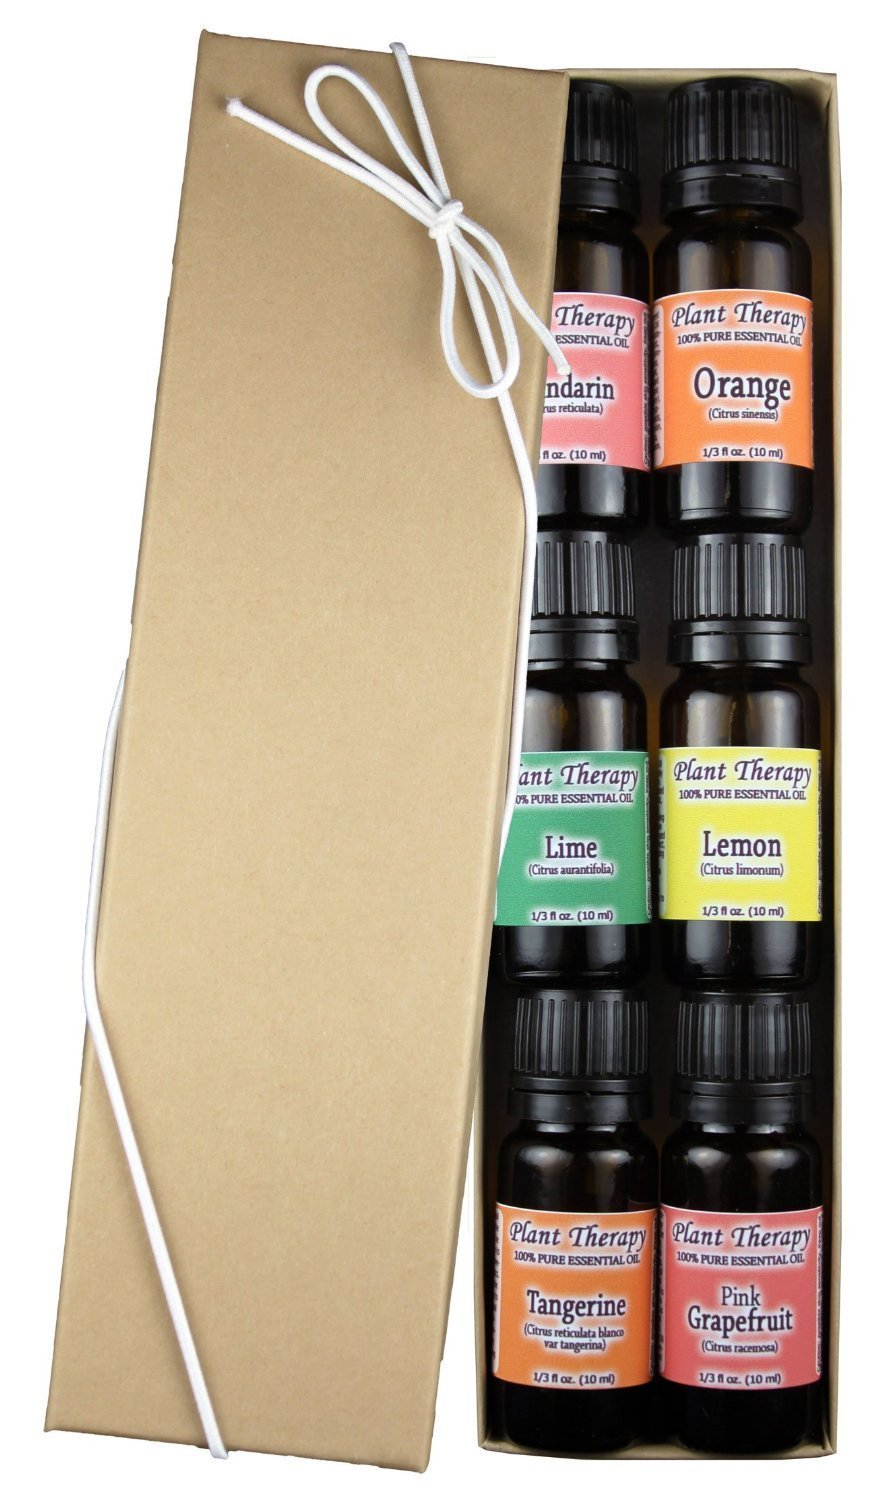 FRUITS- 6 Essential Oil Sampler Set. Includes 100% Pure, Undiluted, Therapeutic Grade Essential Oils of: Sweet Orange, Pink Grapefruit, Lime, Lemon, Tangerine & Mandarin. 10 ml each